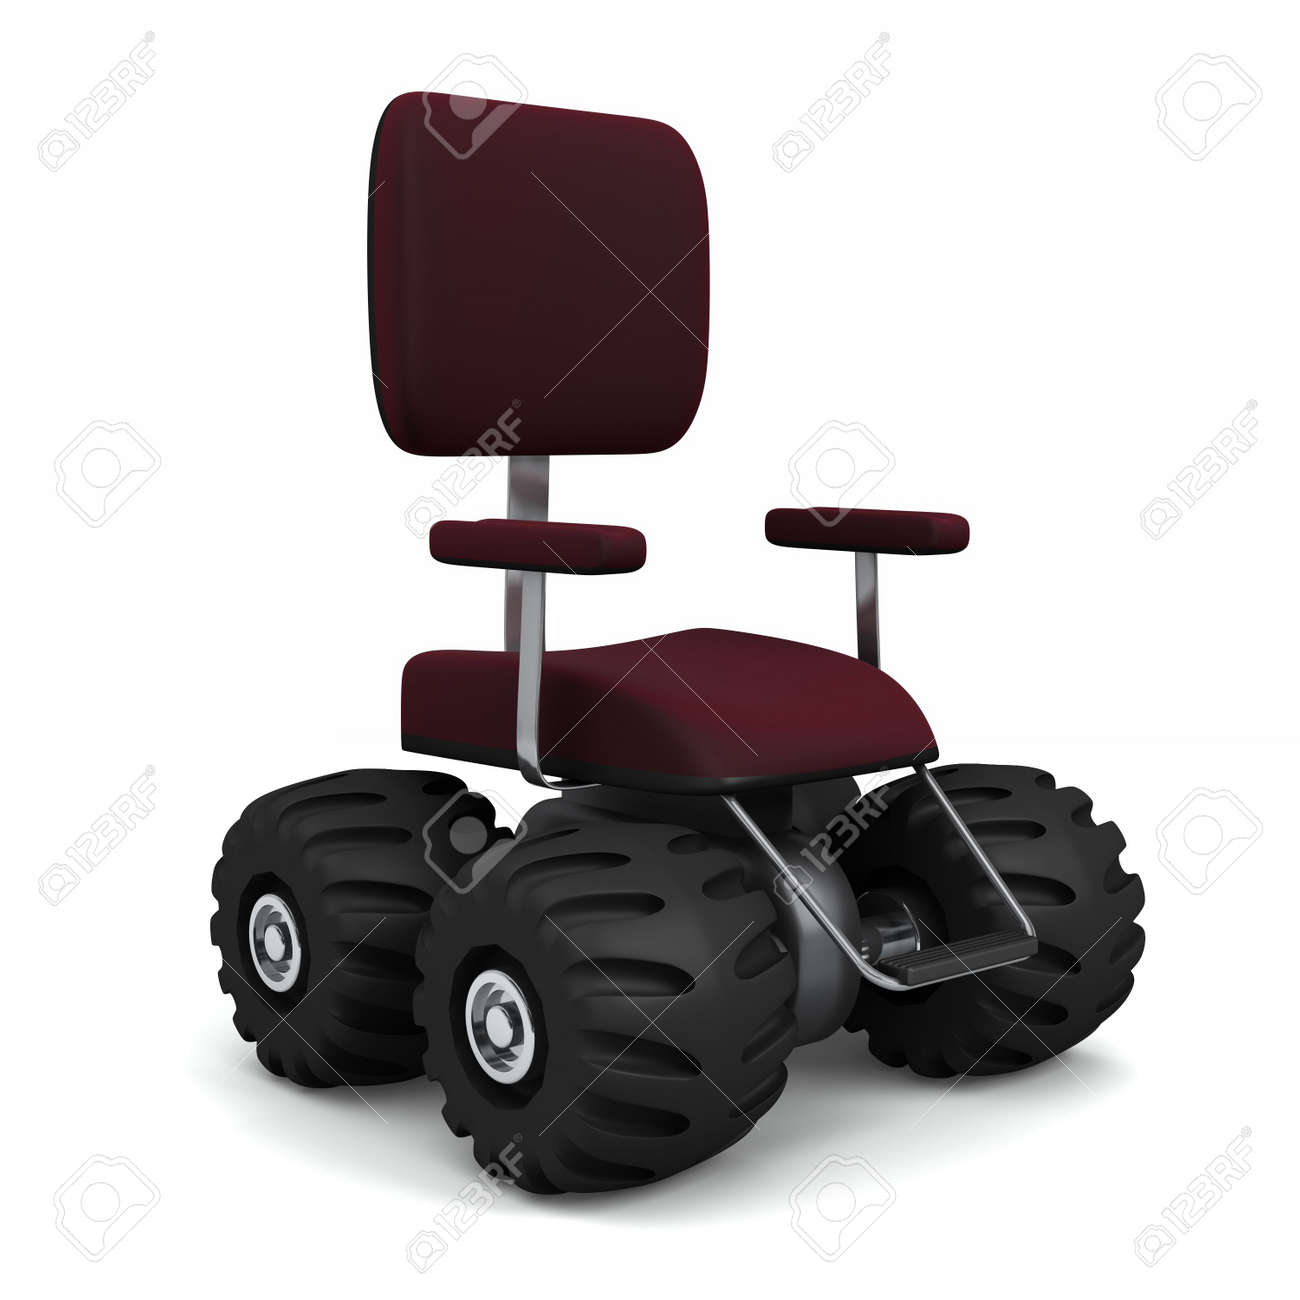 e55759a1e4 4 wheel drive office chair. Big monster truck tires. Isolated on white  Stock Photo